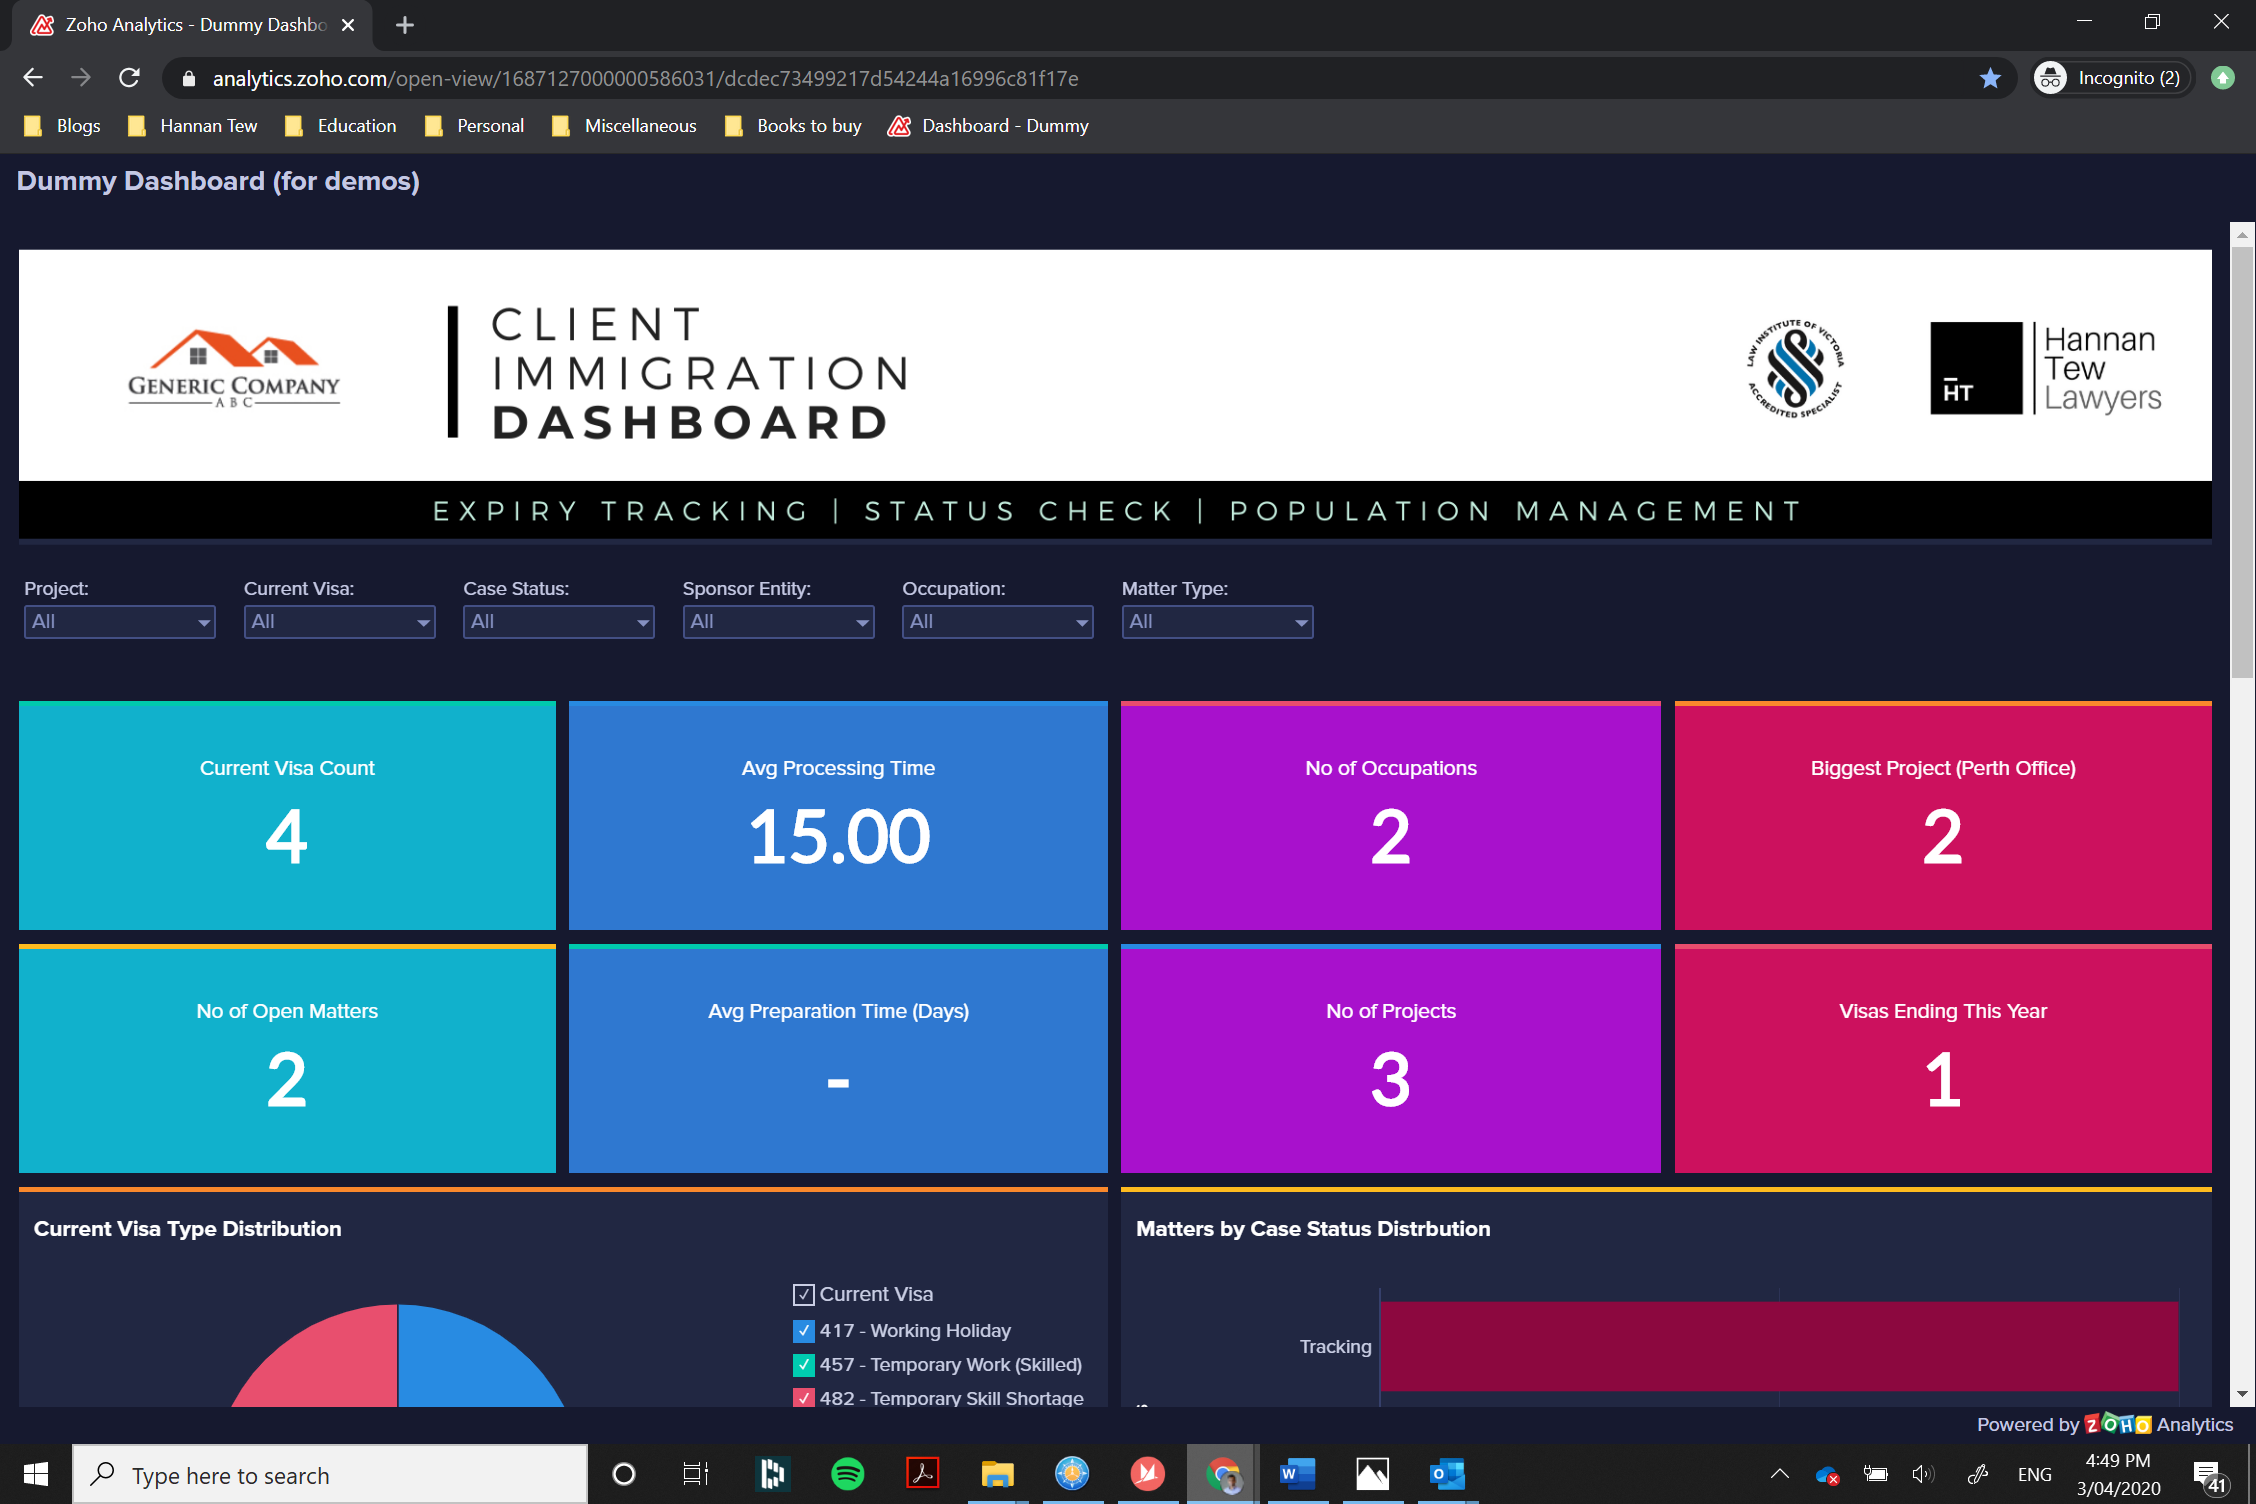 Immigration client dashboard